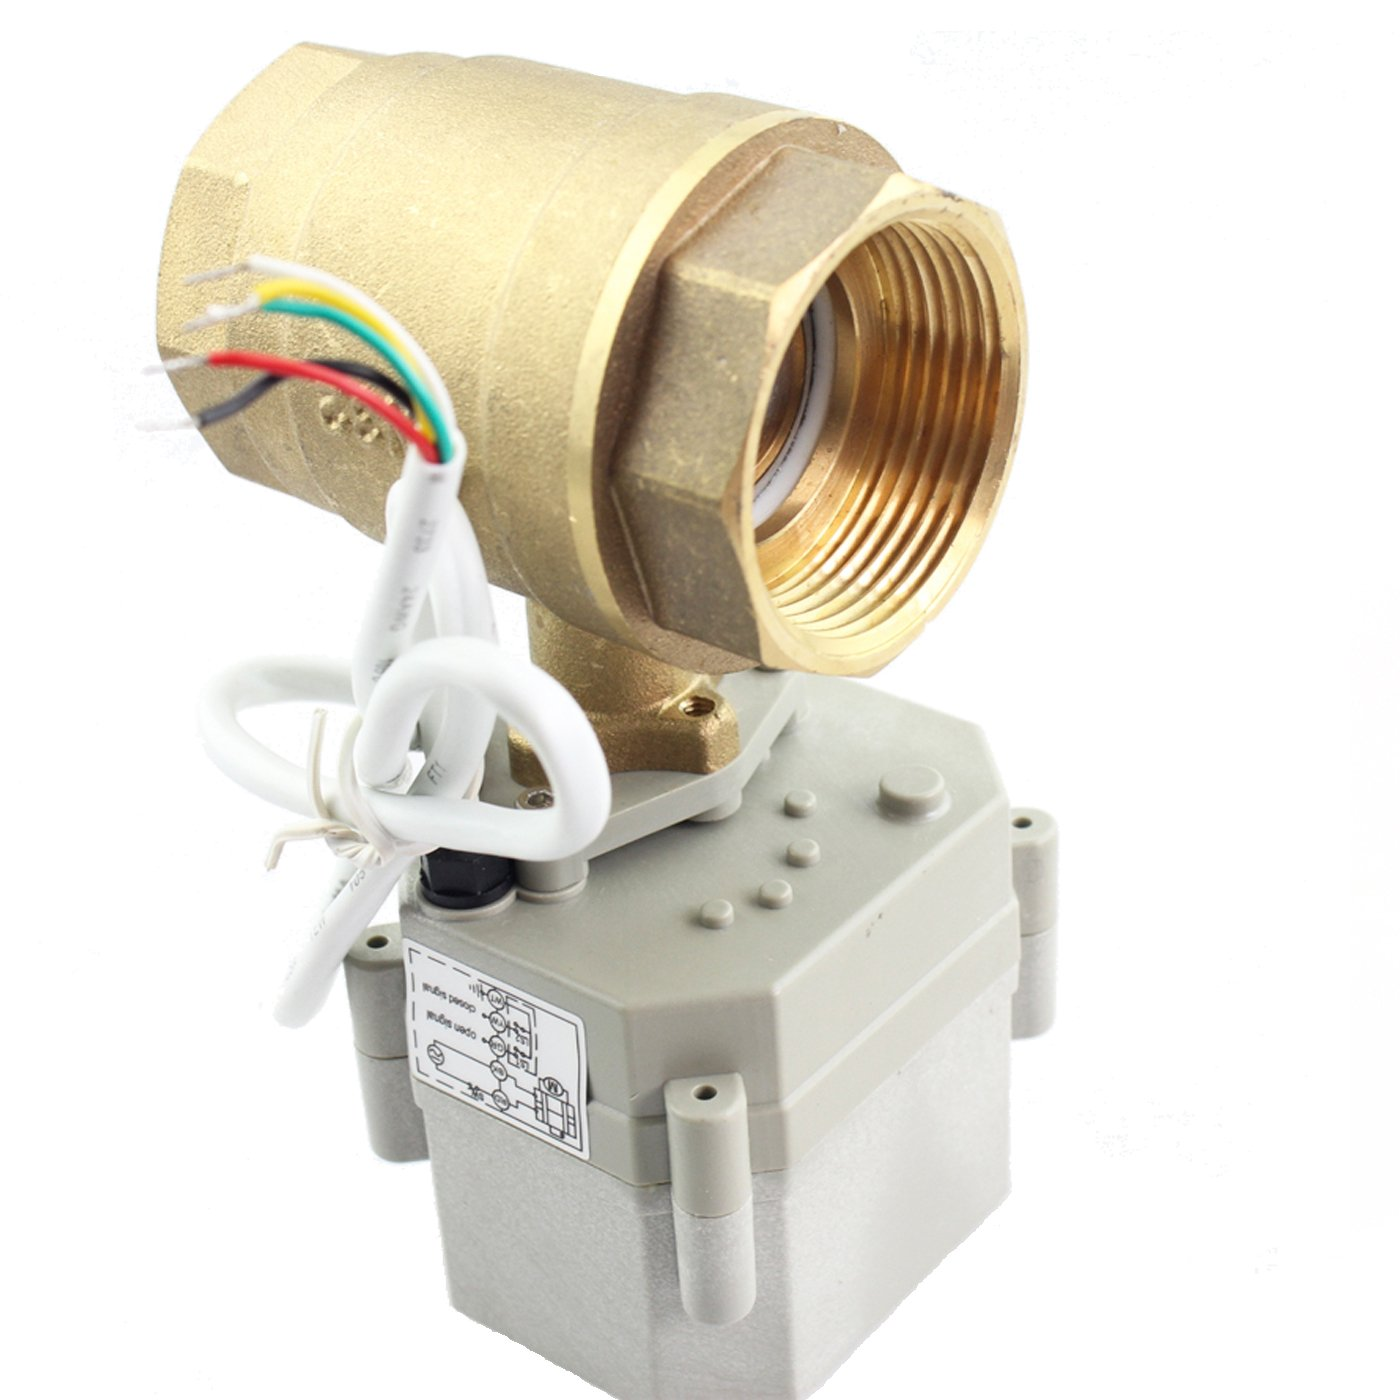 HSH-Flo Motorized Ball Valve 1 AC110V//220V Brass Normally Closed 2 Way CR5-02 Five Wires Electric Ball Valve